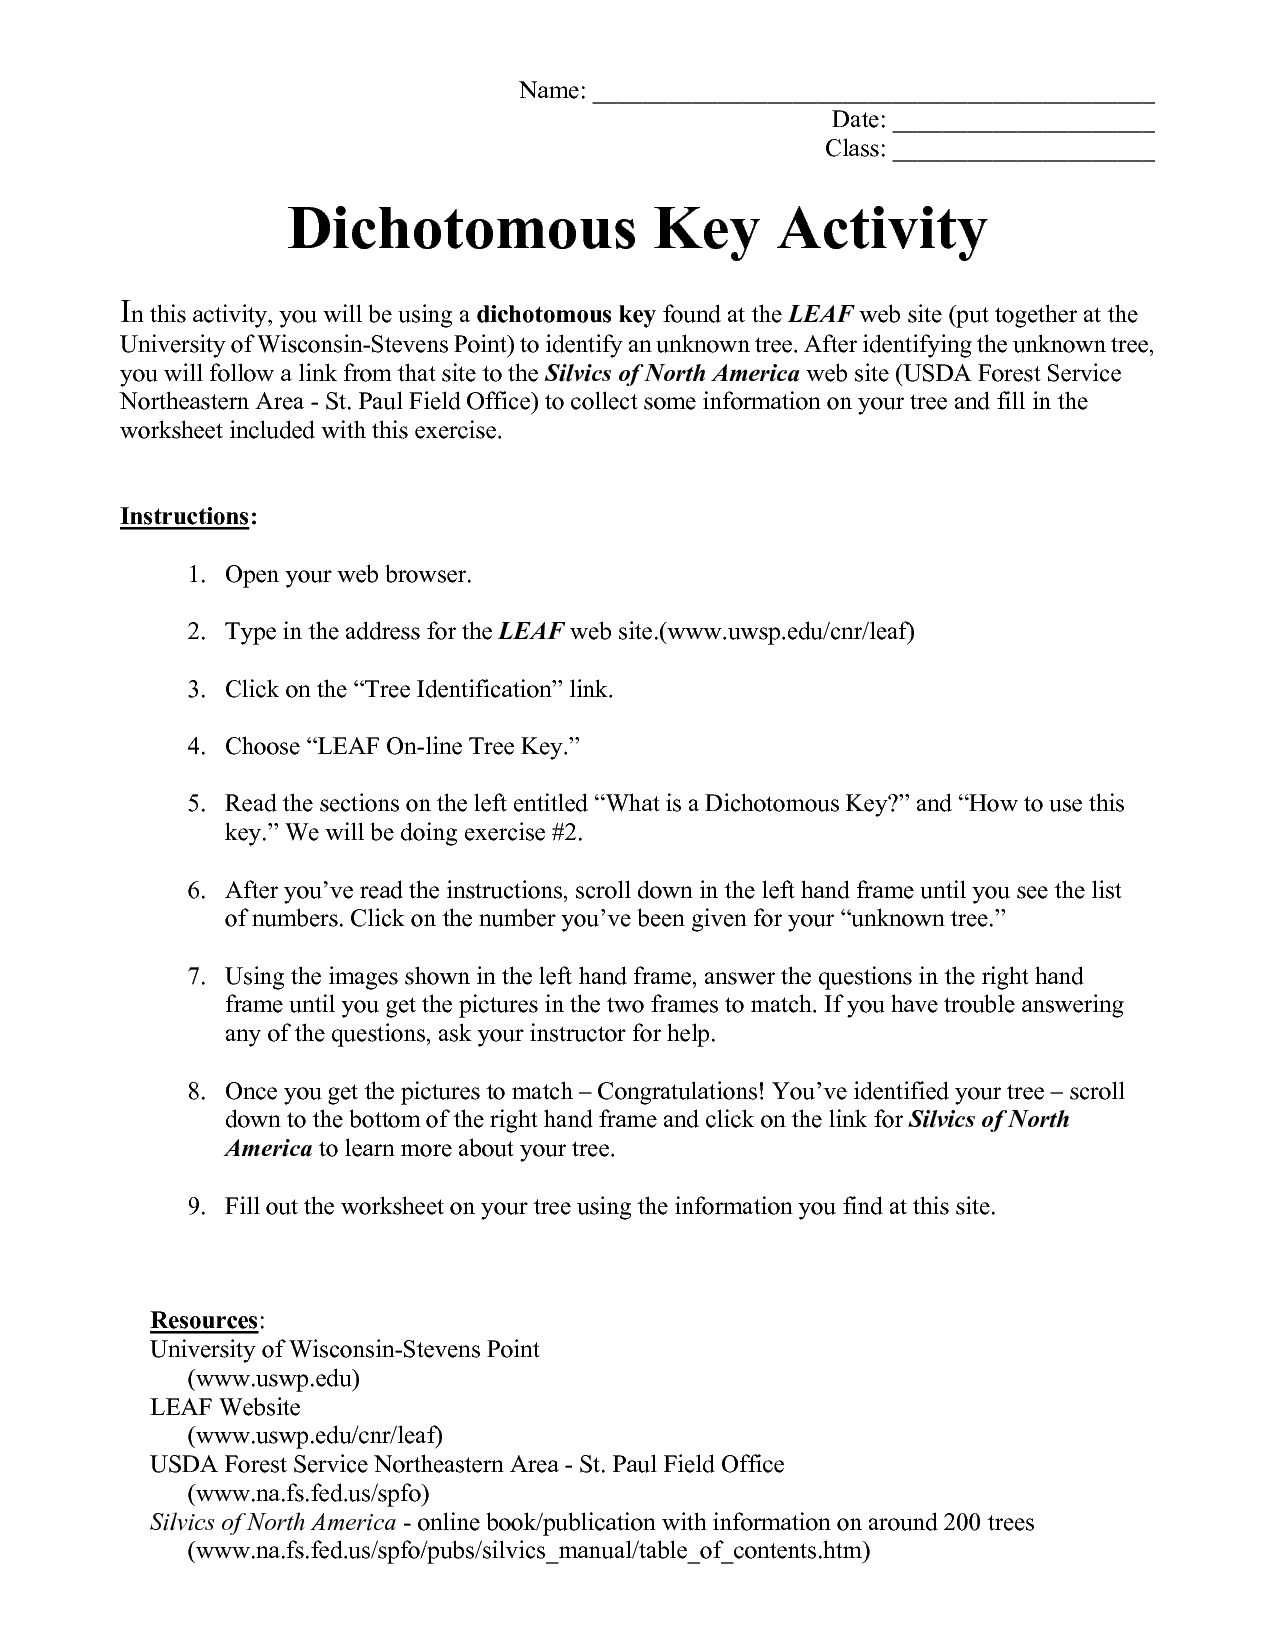 Easy Dichotomous Key Worksheet Dichotomous Worksheet